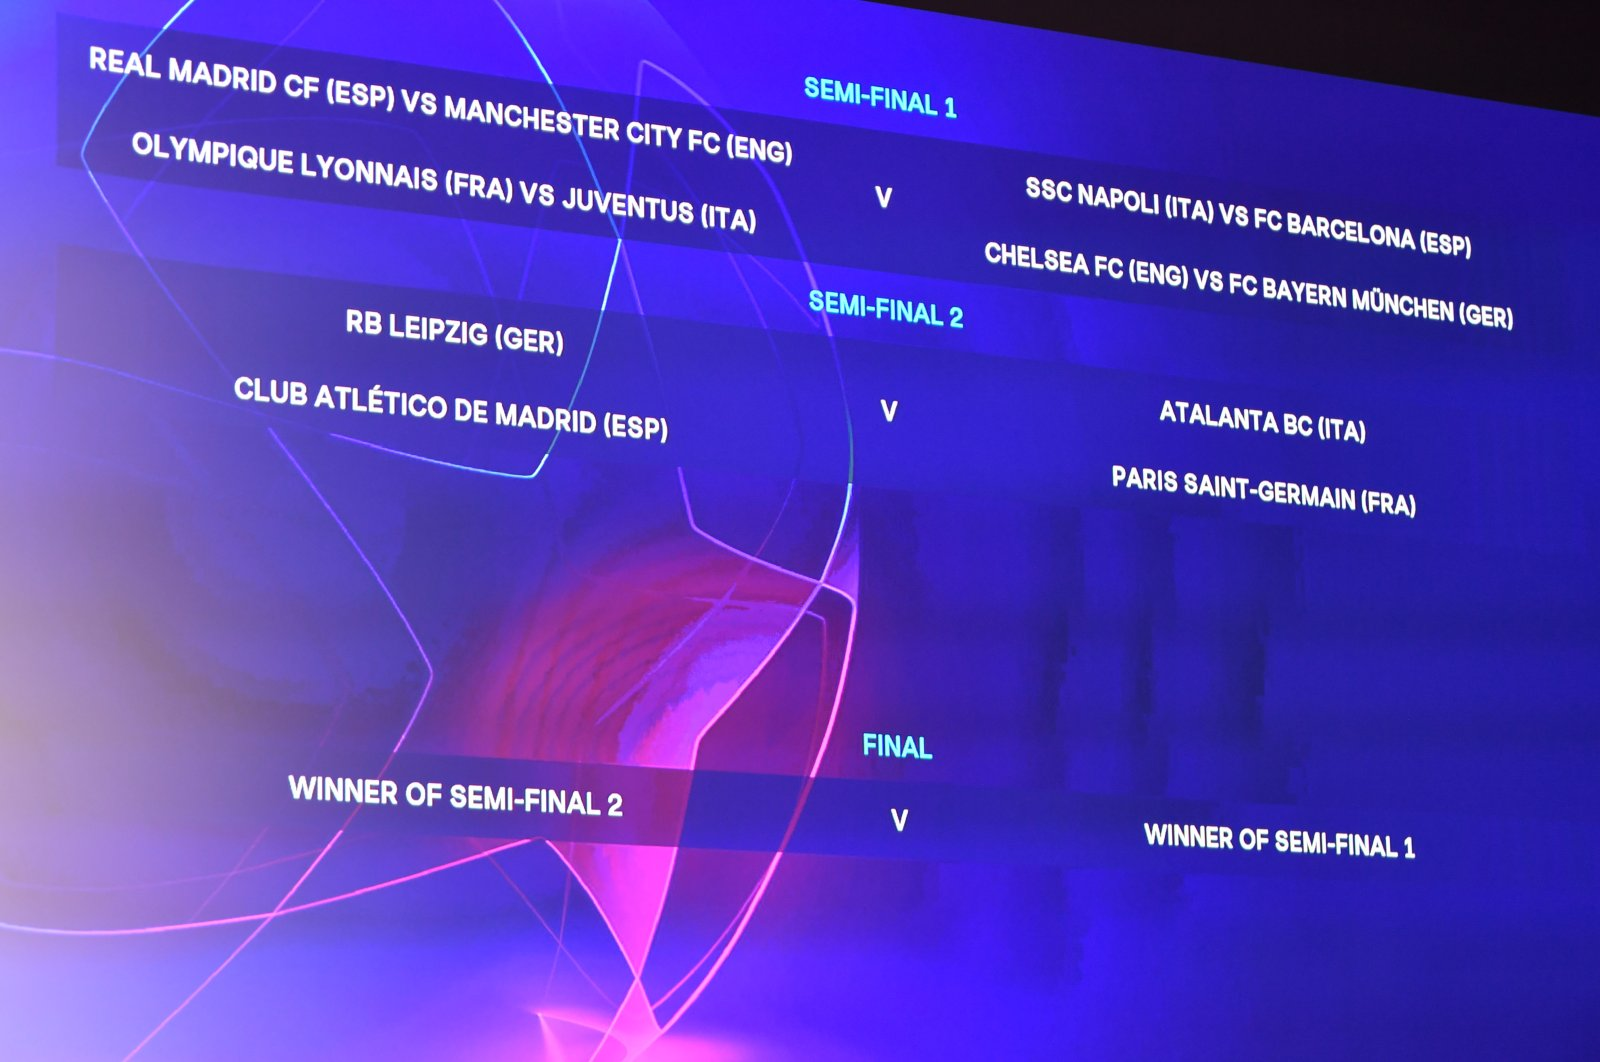 This handout photo, made available by UEFA, shows the potential fixtures of UEFA Champions League 2019/20 quarterfinals and semifinals during the draw at the UEFA headquarters, in Nyon, Switzerland, July 10, 2020. (UEFA via EPA)